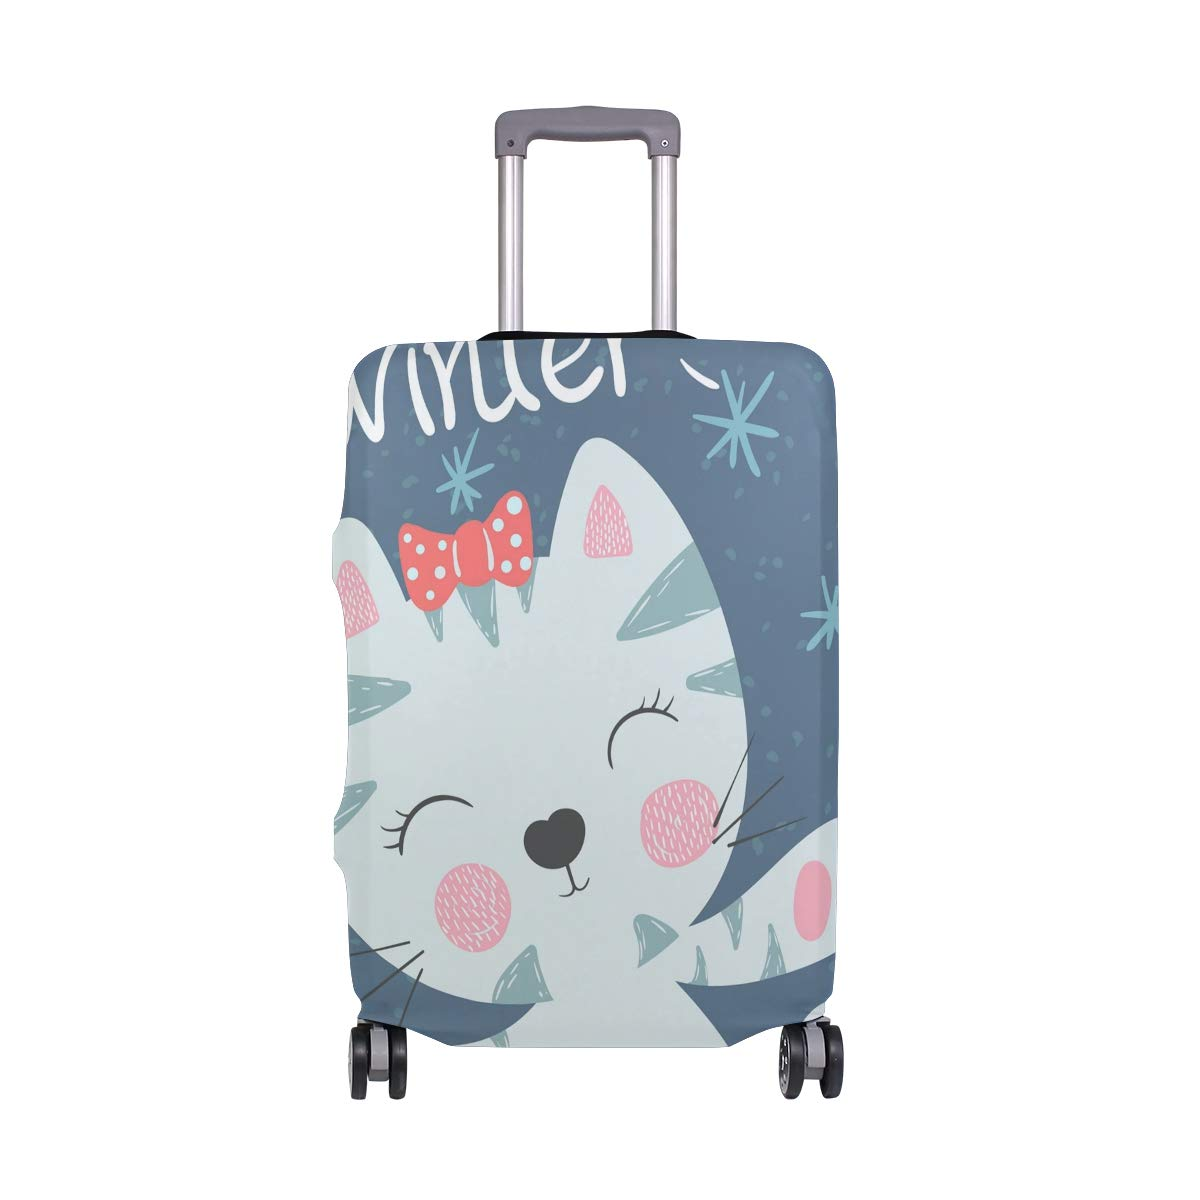 Travel Luggage Cover Cute Cartoon Animal Funny Cat Winter Elastic Suitcase Protector Washable Baggage Covers Fits 18-32 inch